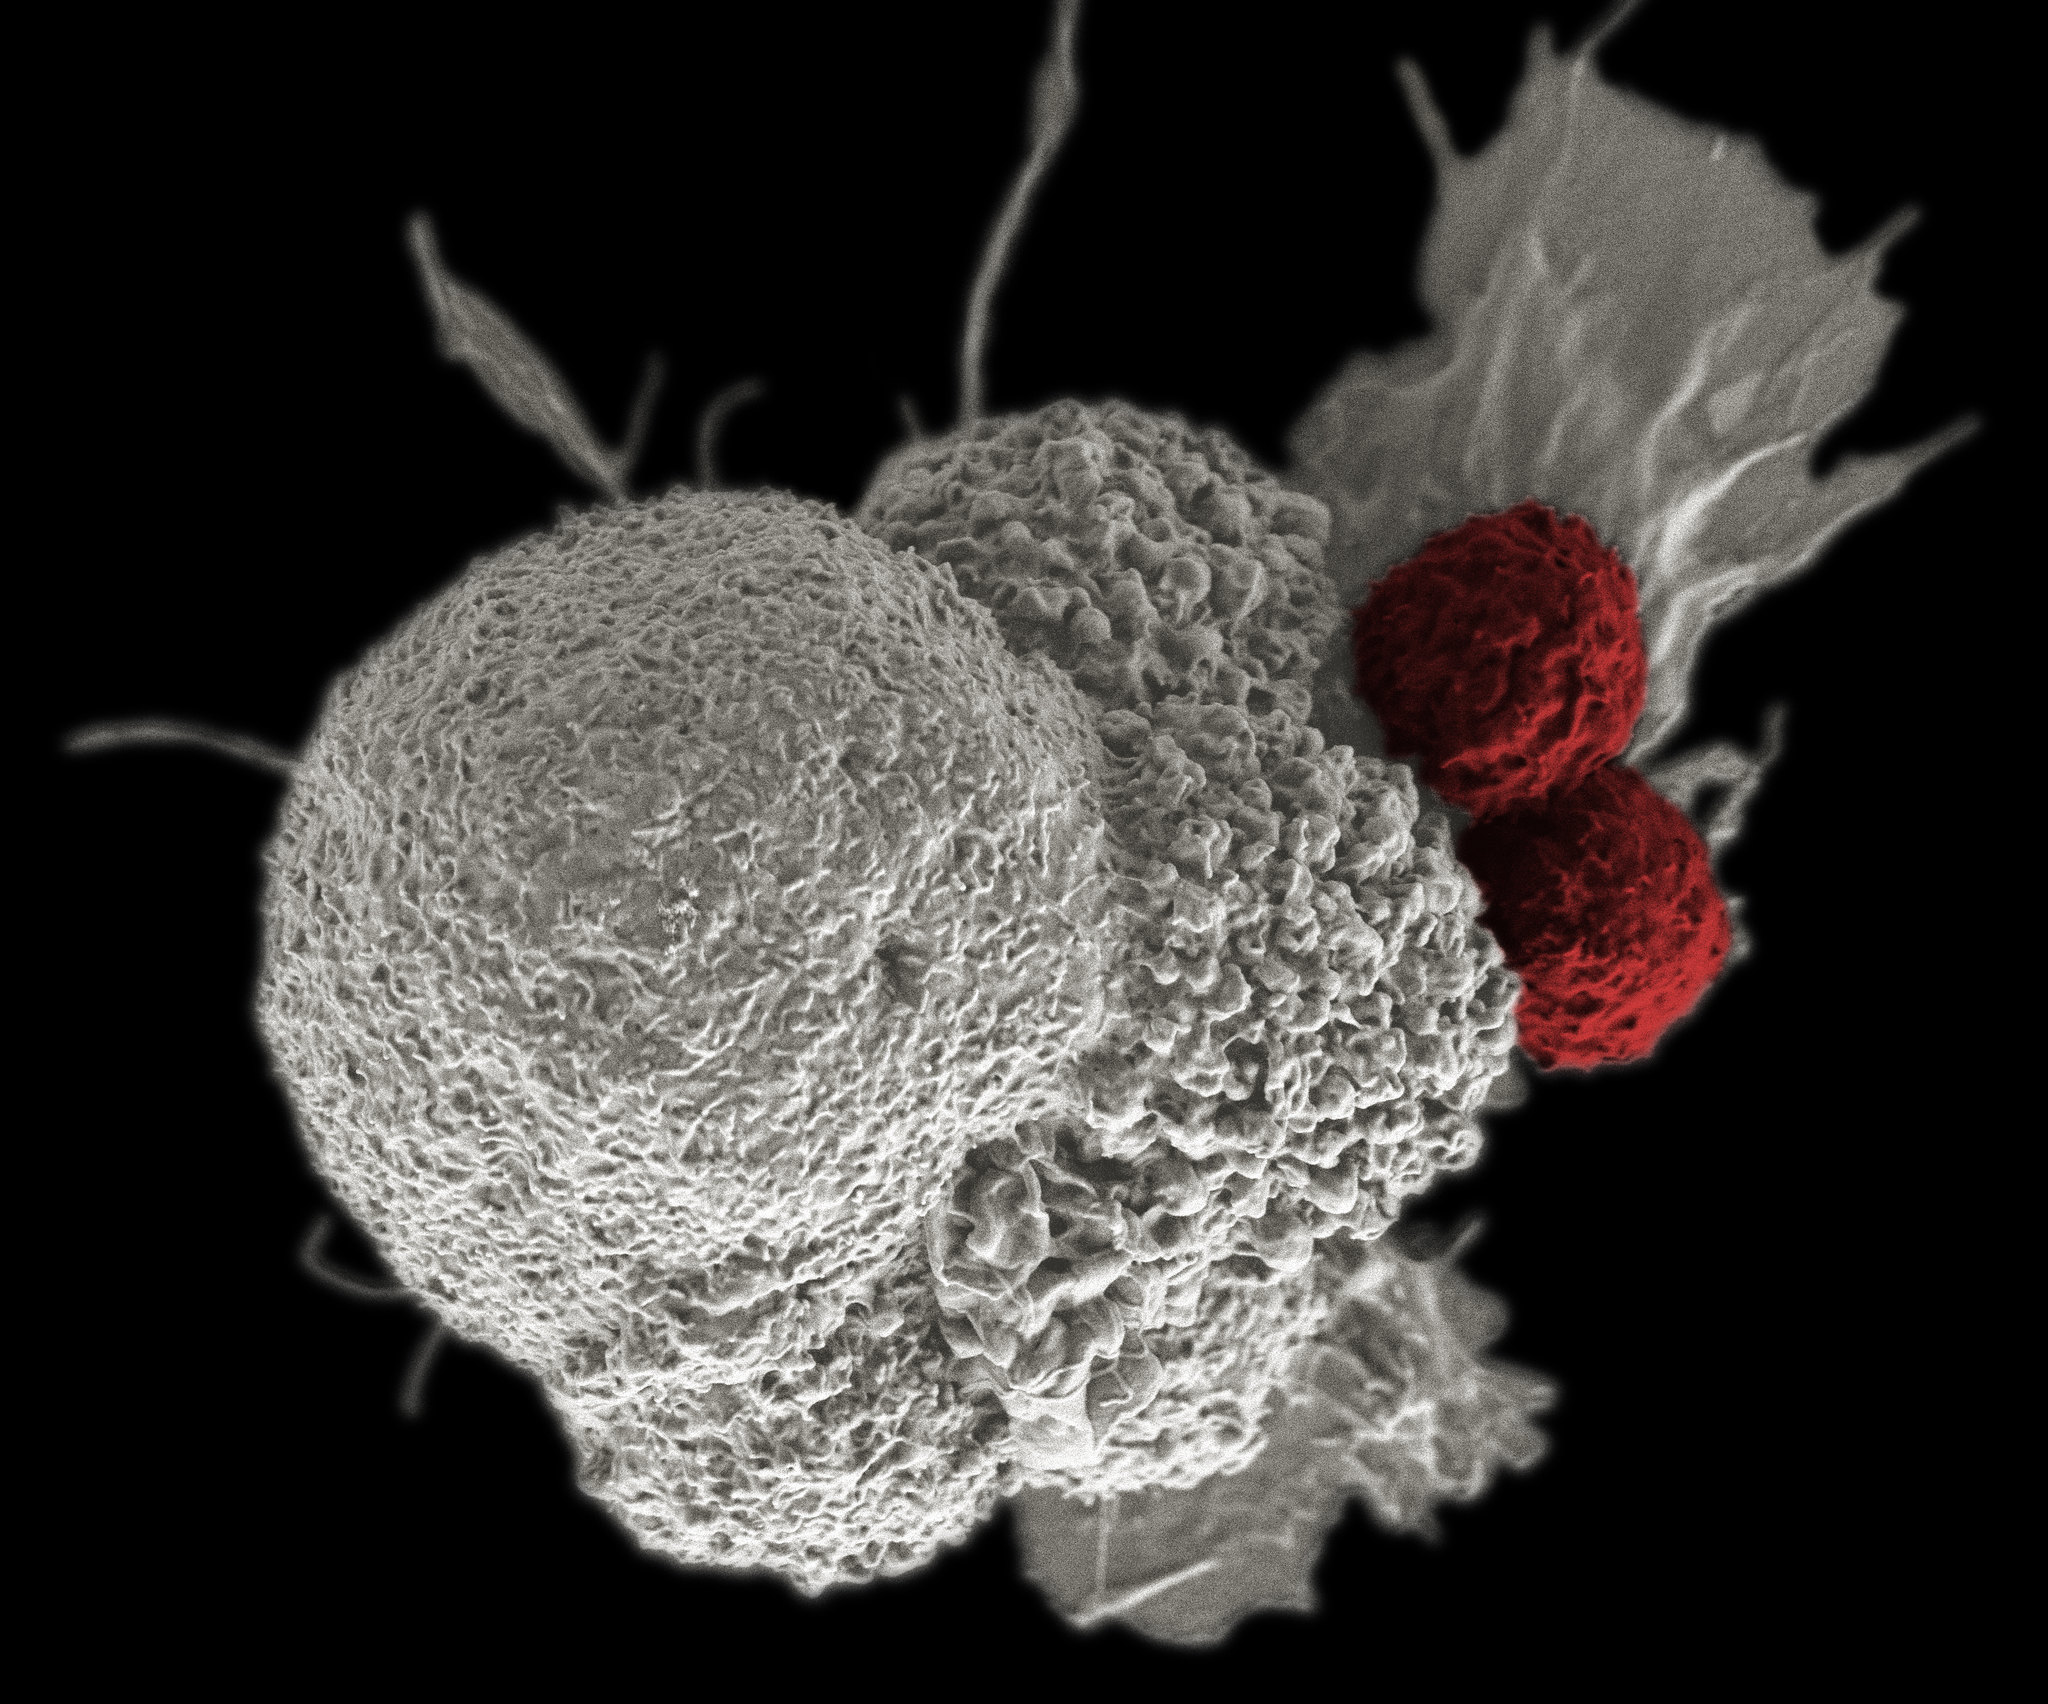 Genetically Edited White Blood Cells Are Already Helping Fight Cancer